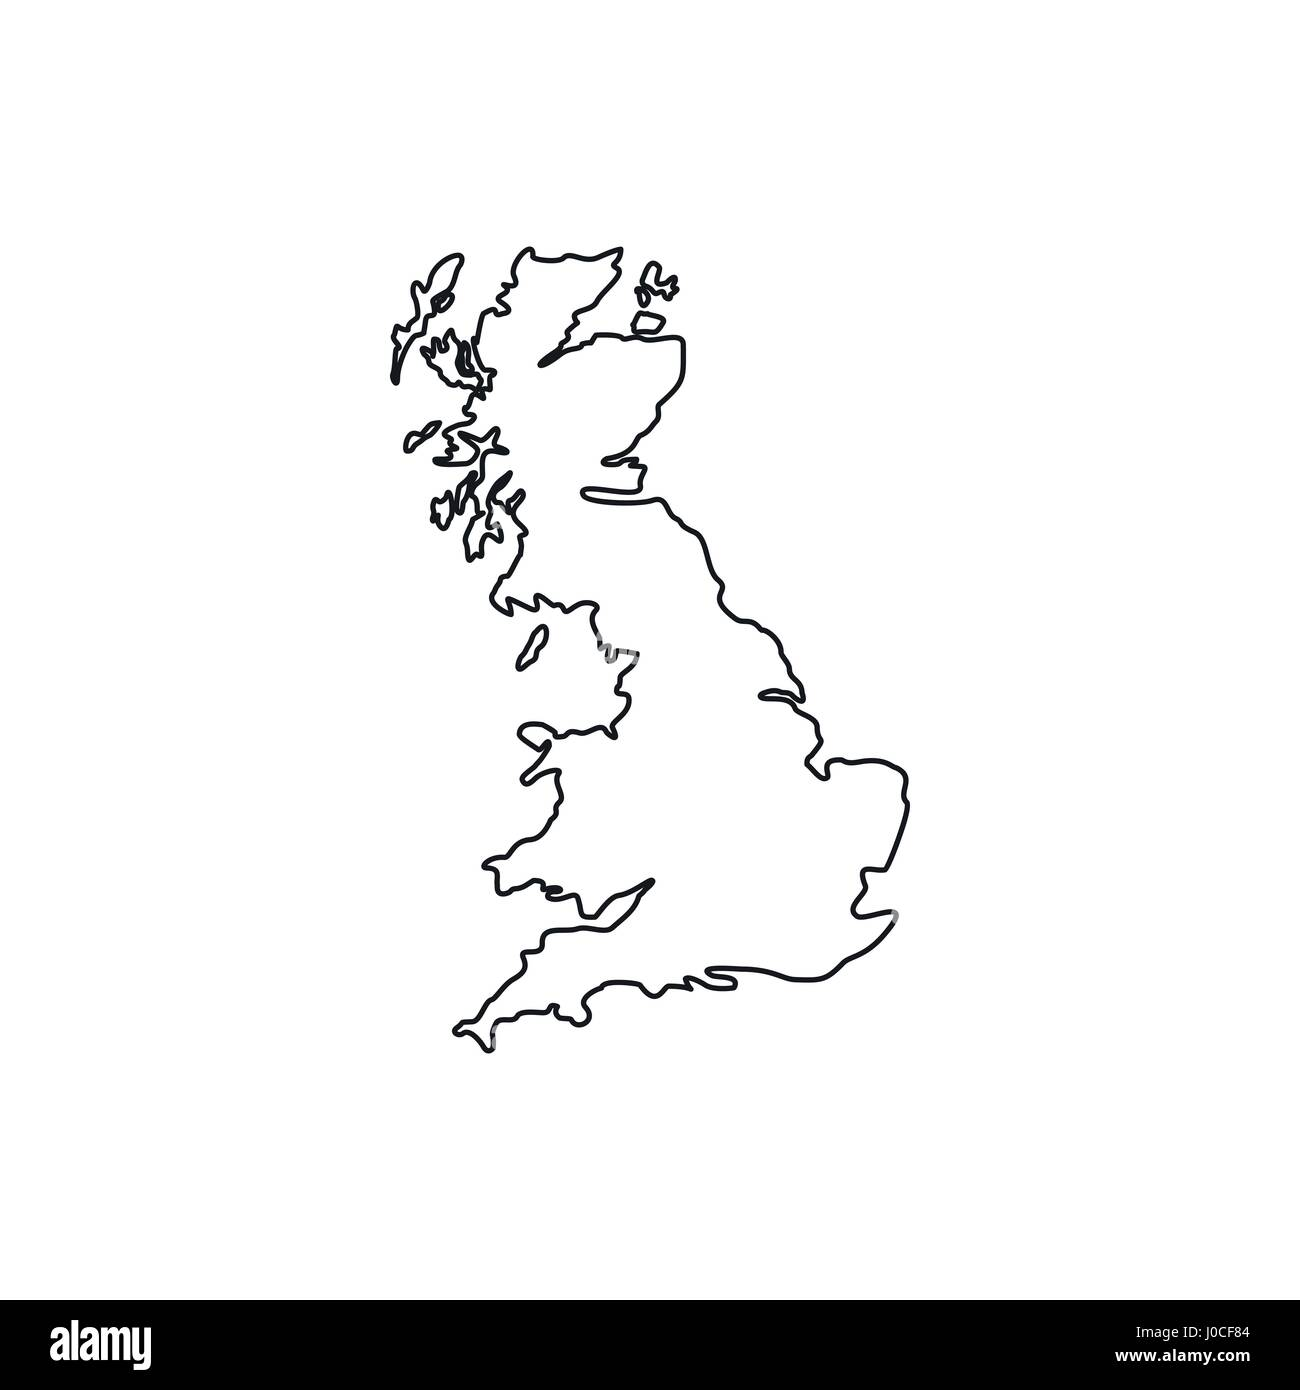 Outline Map Of Britain Stock Photos & Outline Map Of Britain ...